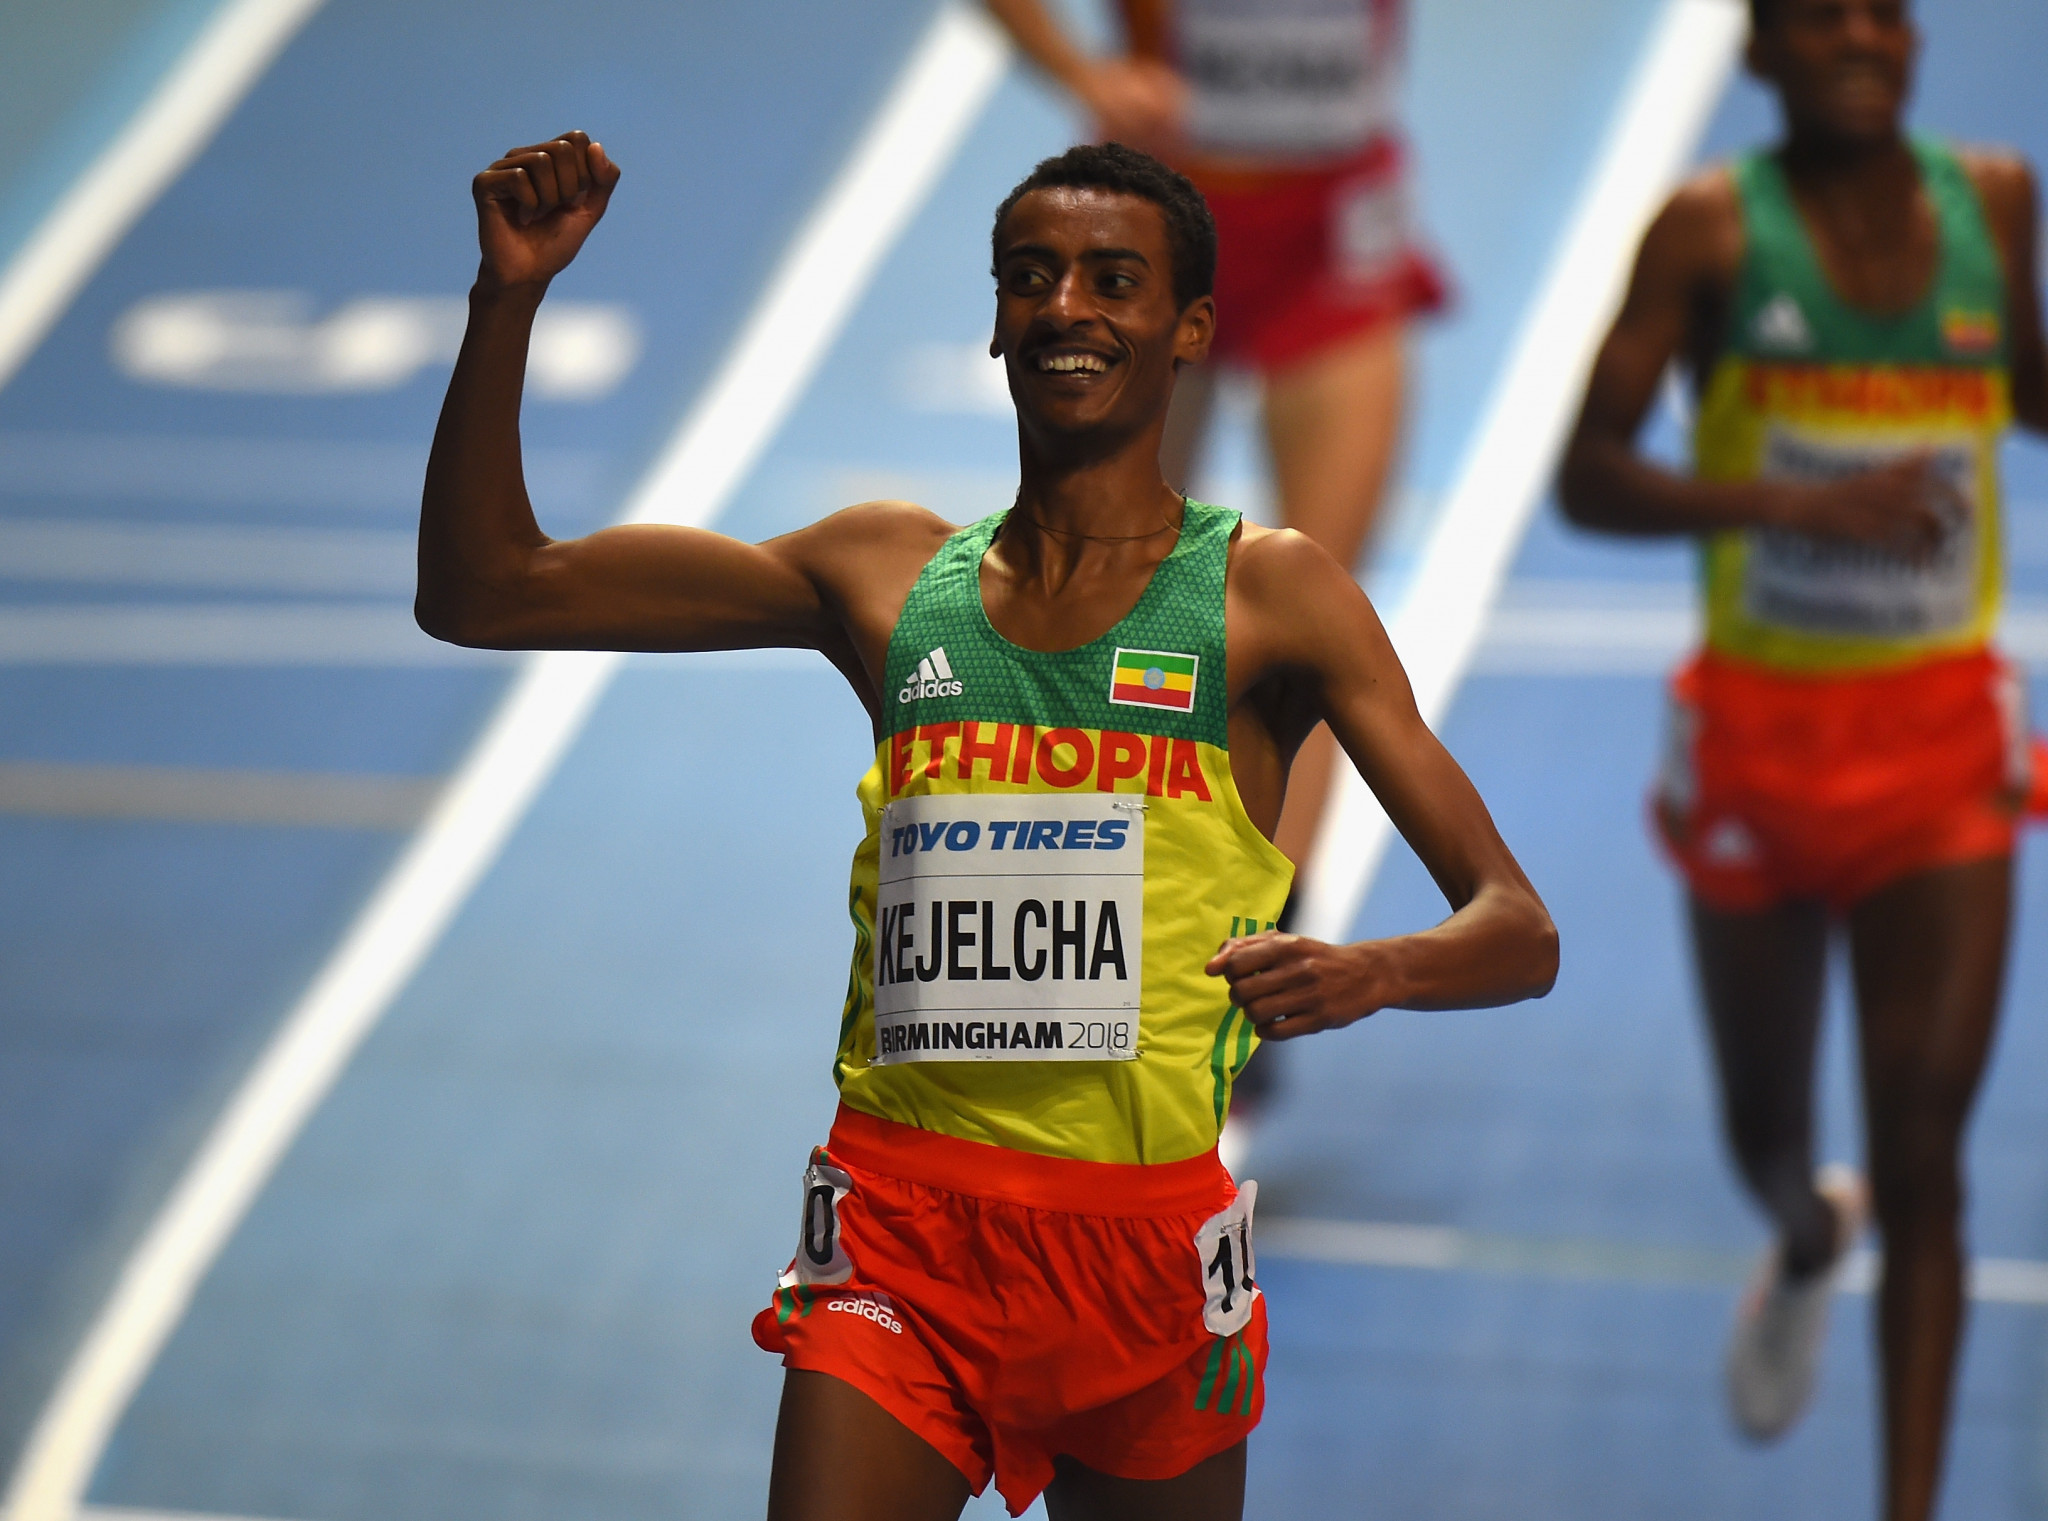 Ethiopia's Yomif Kejelcha will return to Birmingham with the potential to break the men's indoor 1500m world record set by Morocco's Hicham El Guerrouj in 1997 ©Getty Images